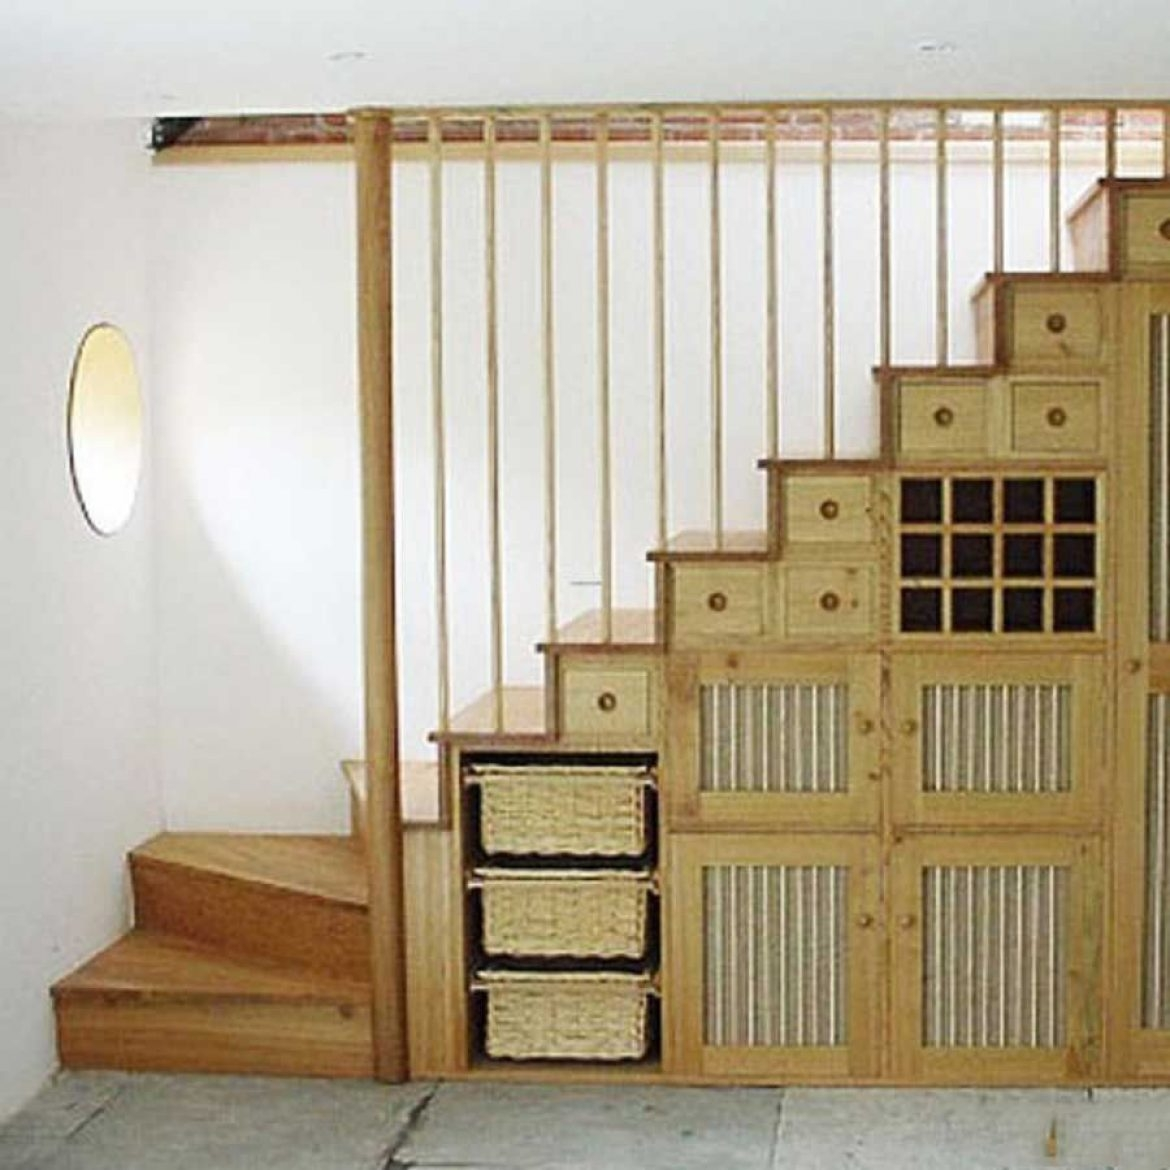 Able Light Design Ideas Occupy Less Space Suitable For Small Area   Stairway Designs For Small Spaces   Home Side Wall   Storage   Decorative   Straight   First Floor Step